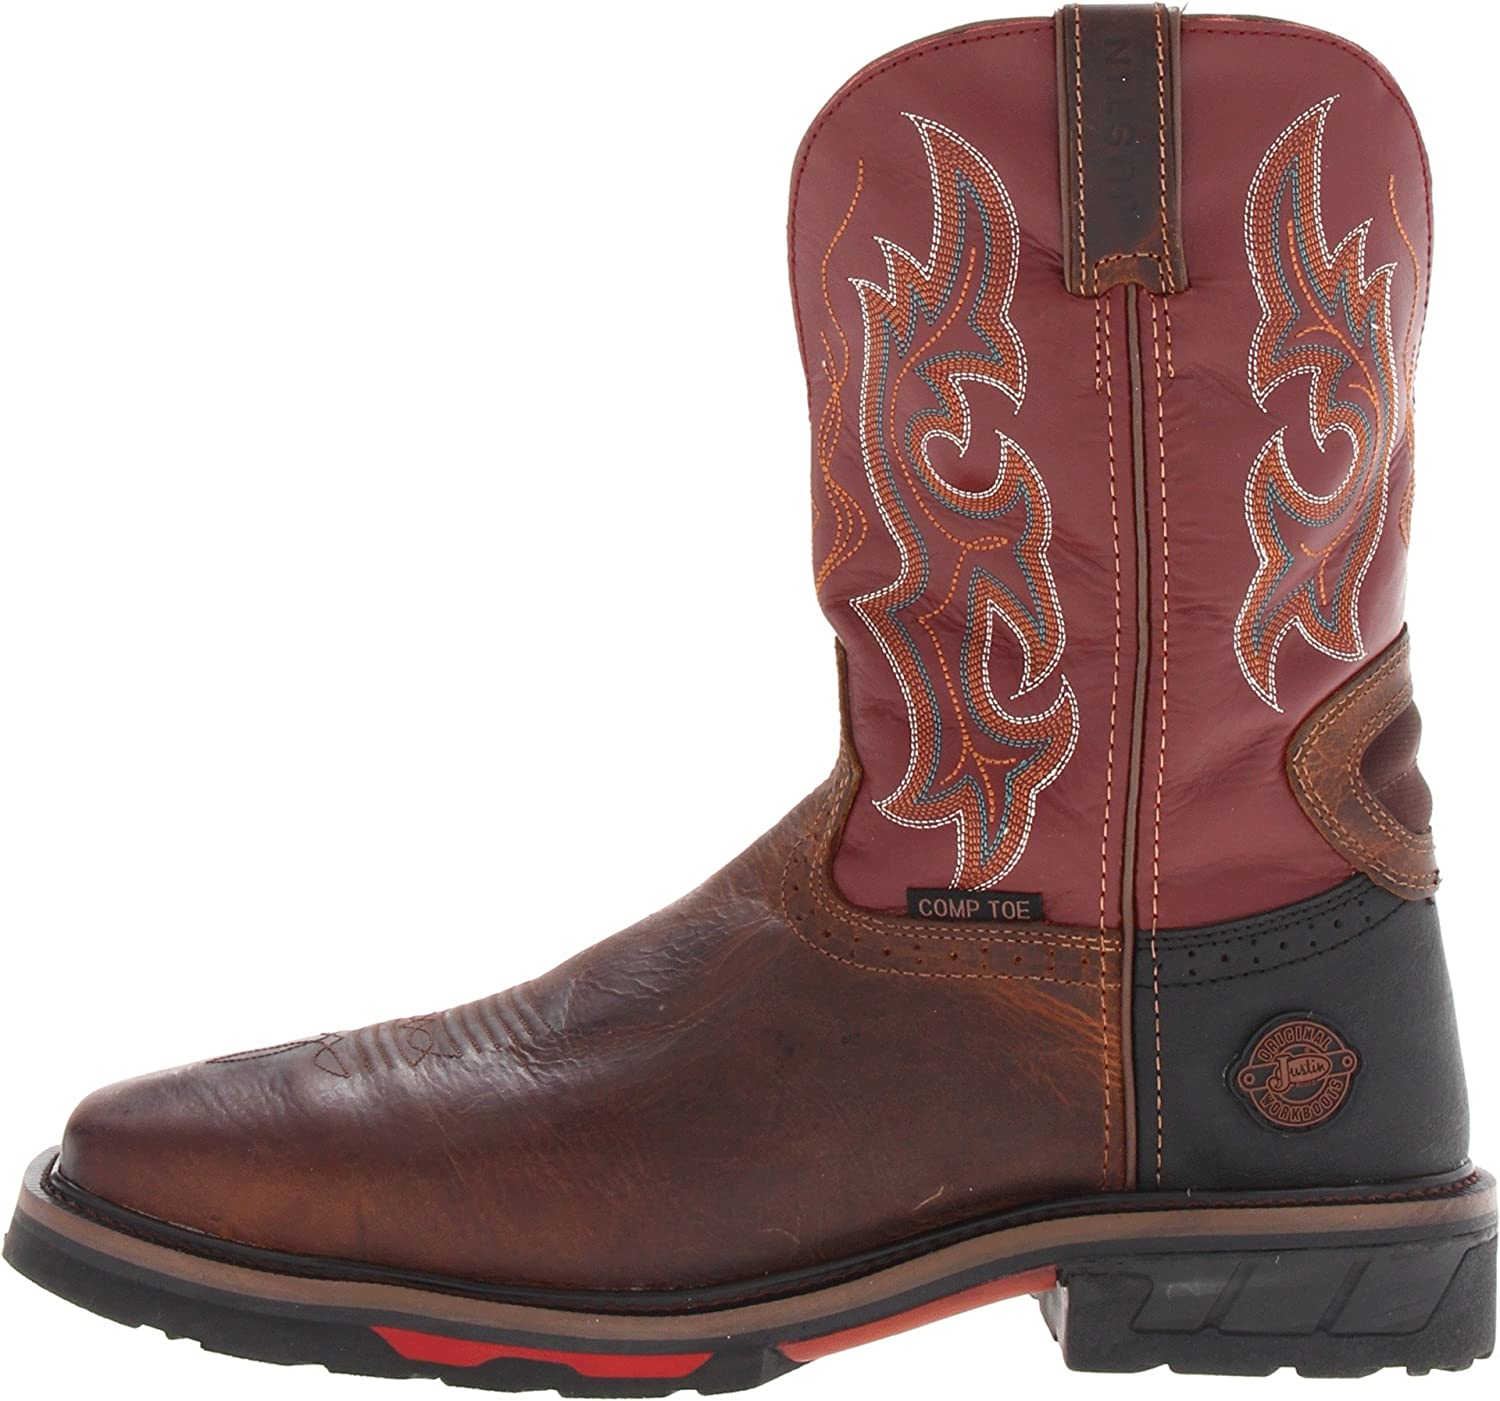 a18047cfcc5 Amazon.com | Justin Original Work Boots Men's Hybred Comp Toe Work ...